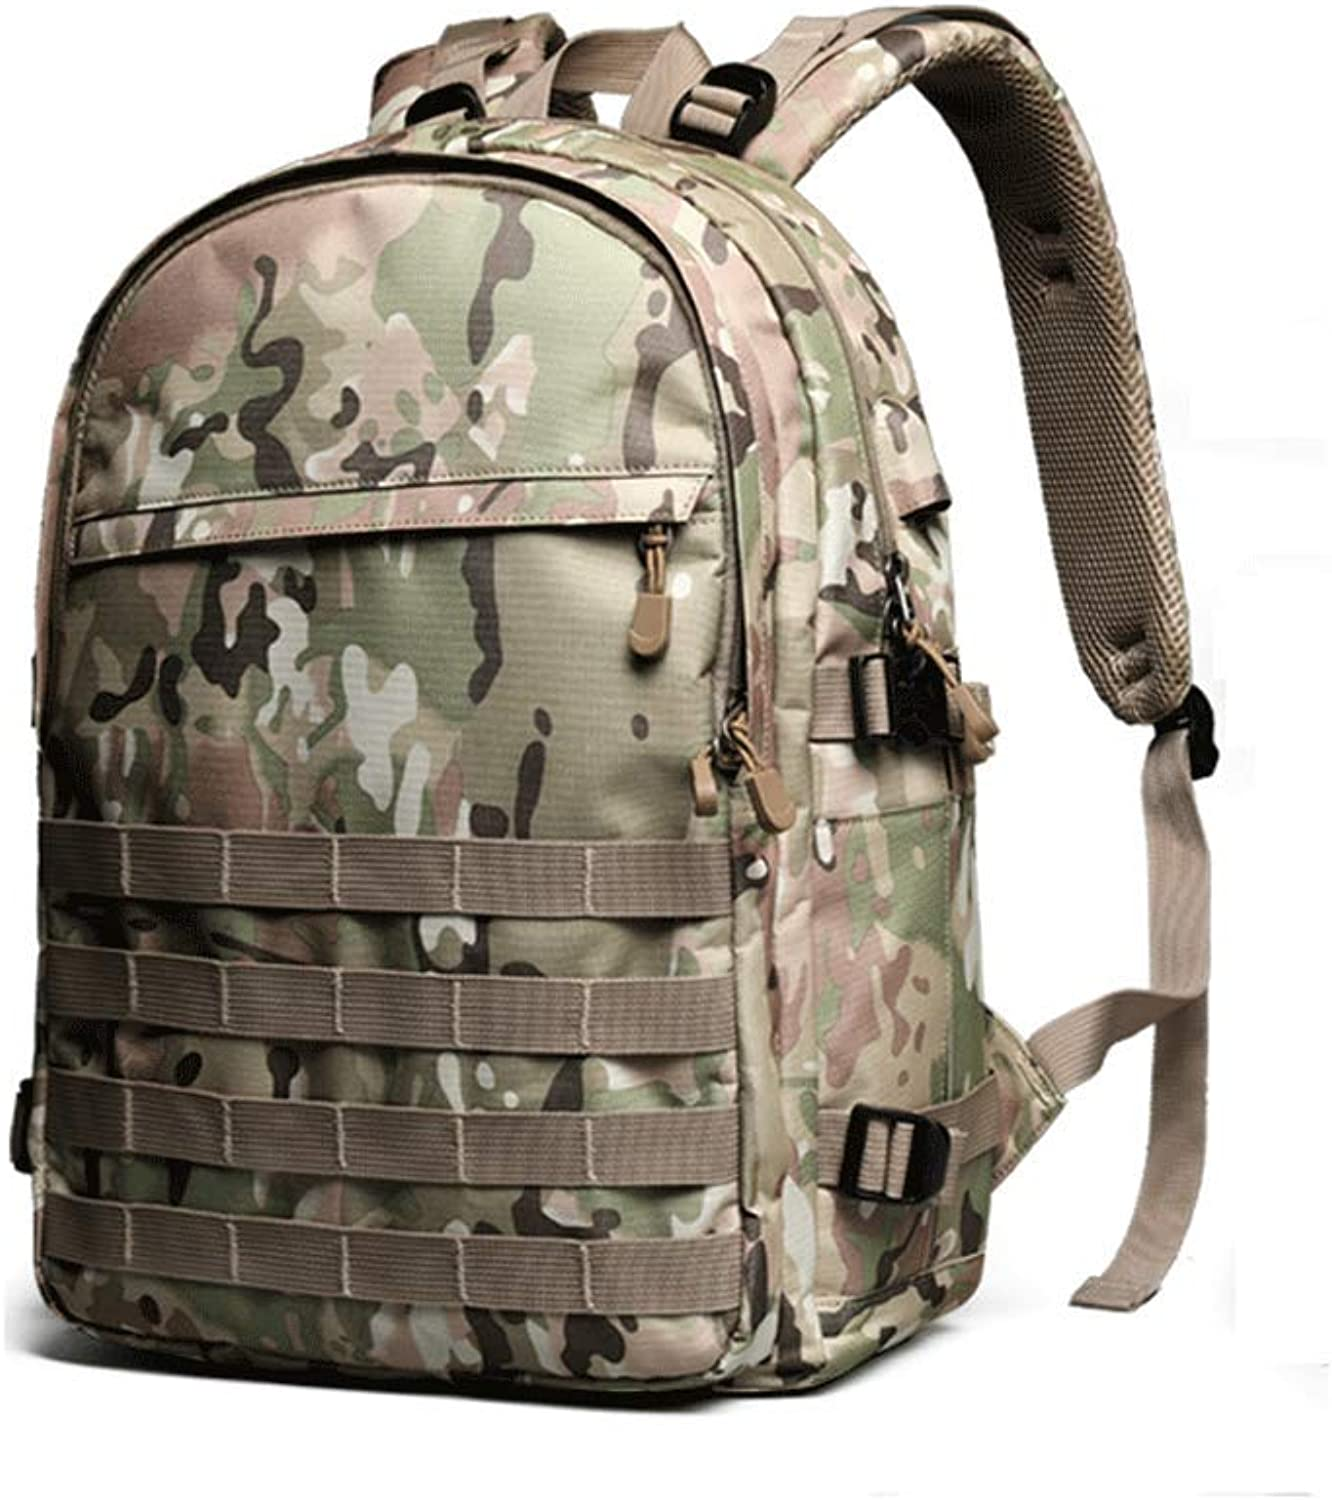 HZH Creative Camouflage Army Backpack Men's Backpack Travel Fashion Trends Junior High School Pupils